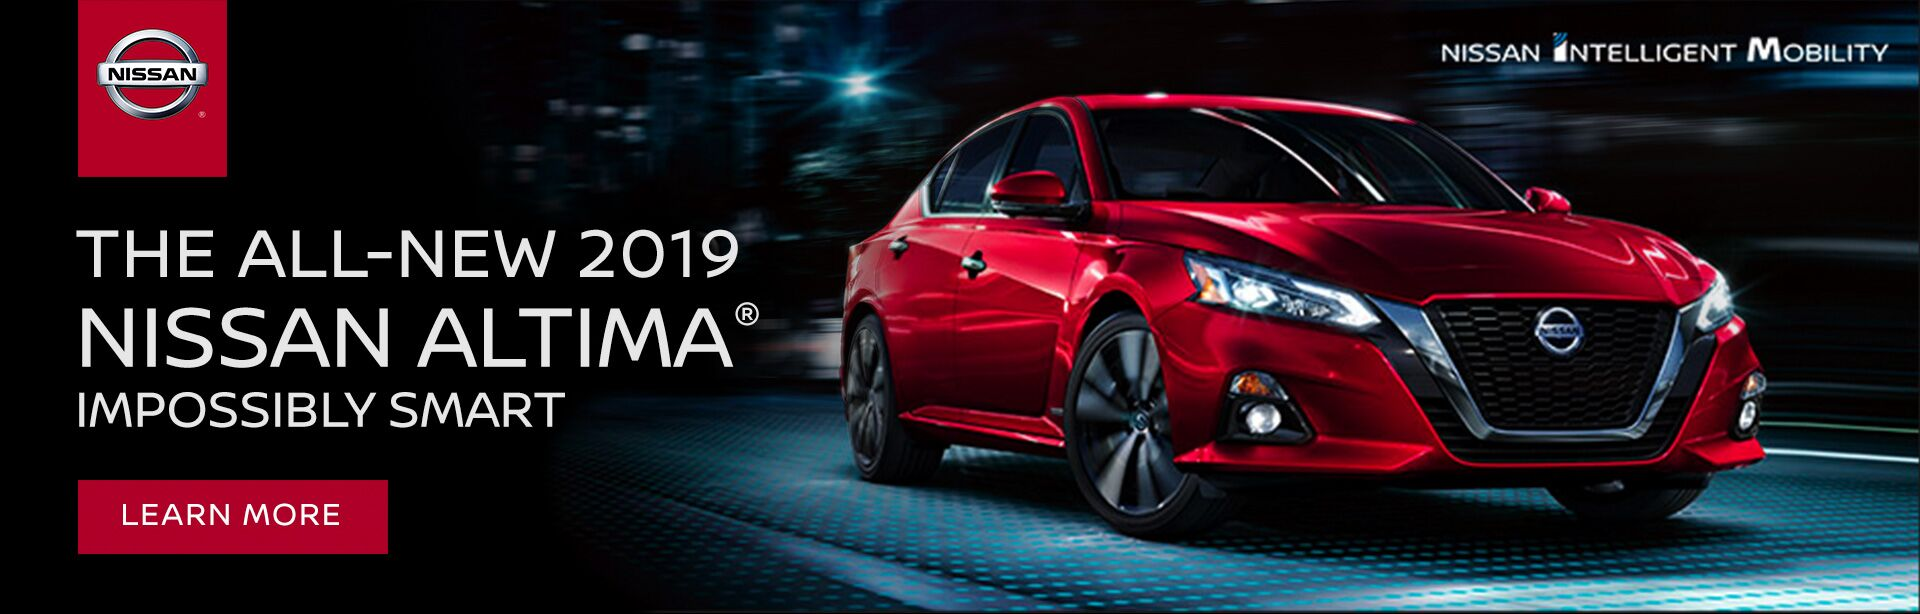 All-New 2019 Nissan Altima